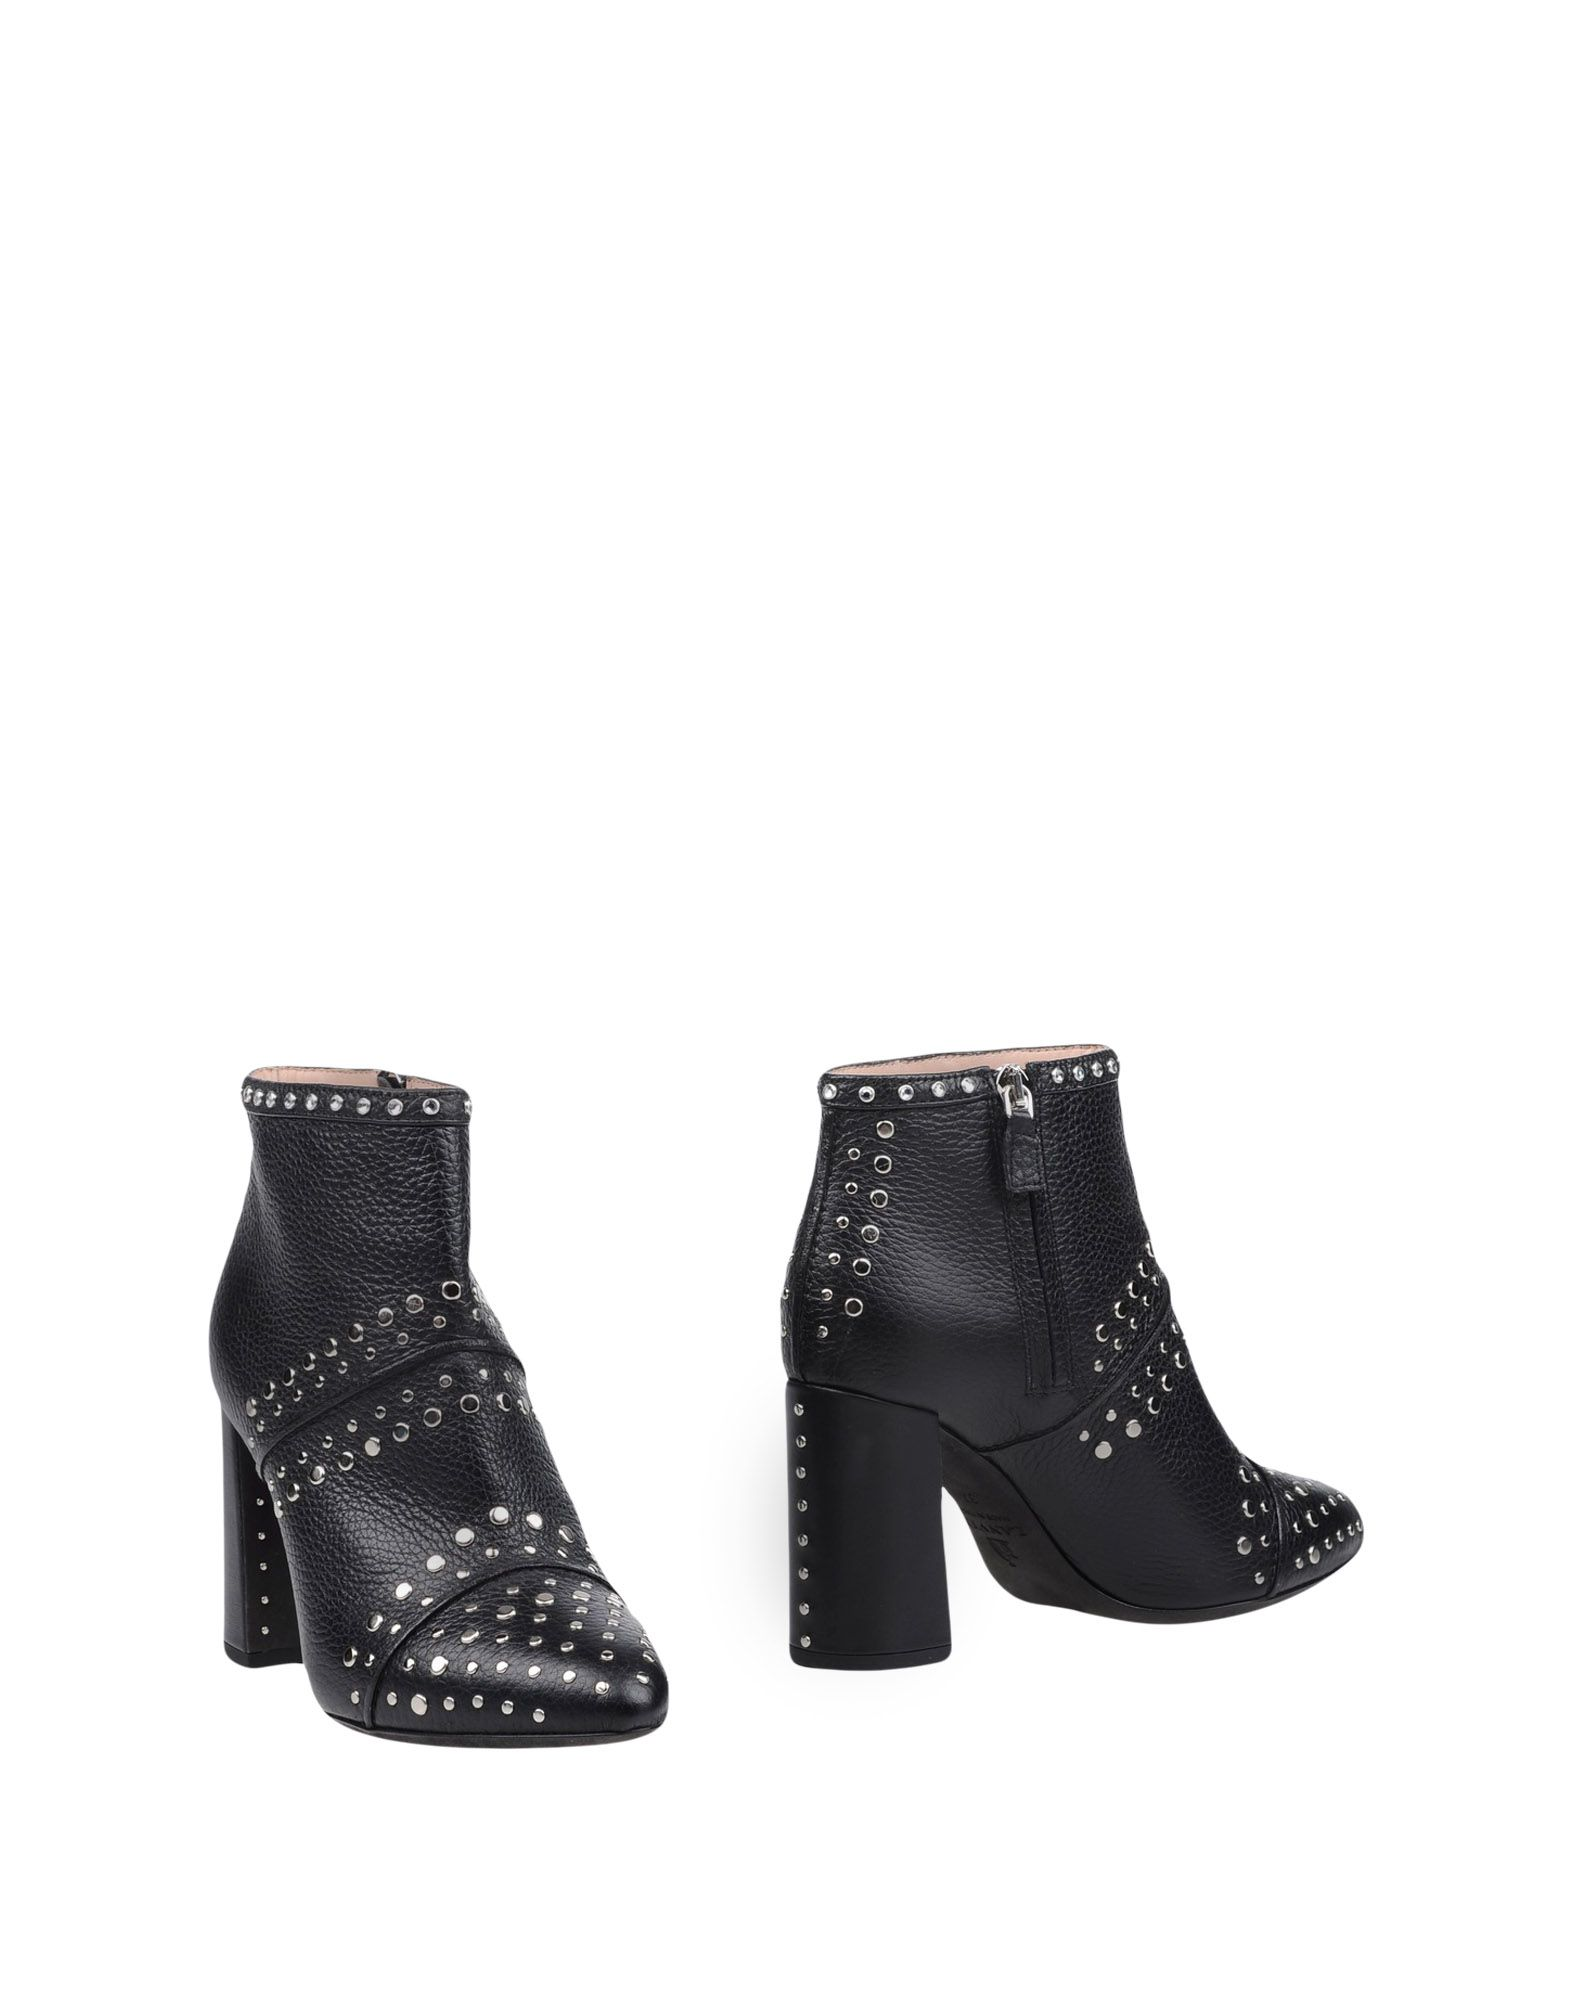 Lanvin Ankle Boot - Women Lanvin Ankle Boots online on 11366845UG  United Kingdom - 11366845UG on a9e5ed